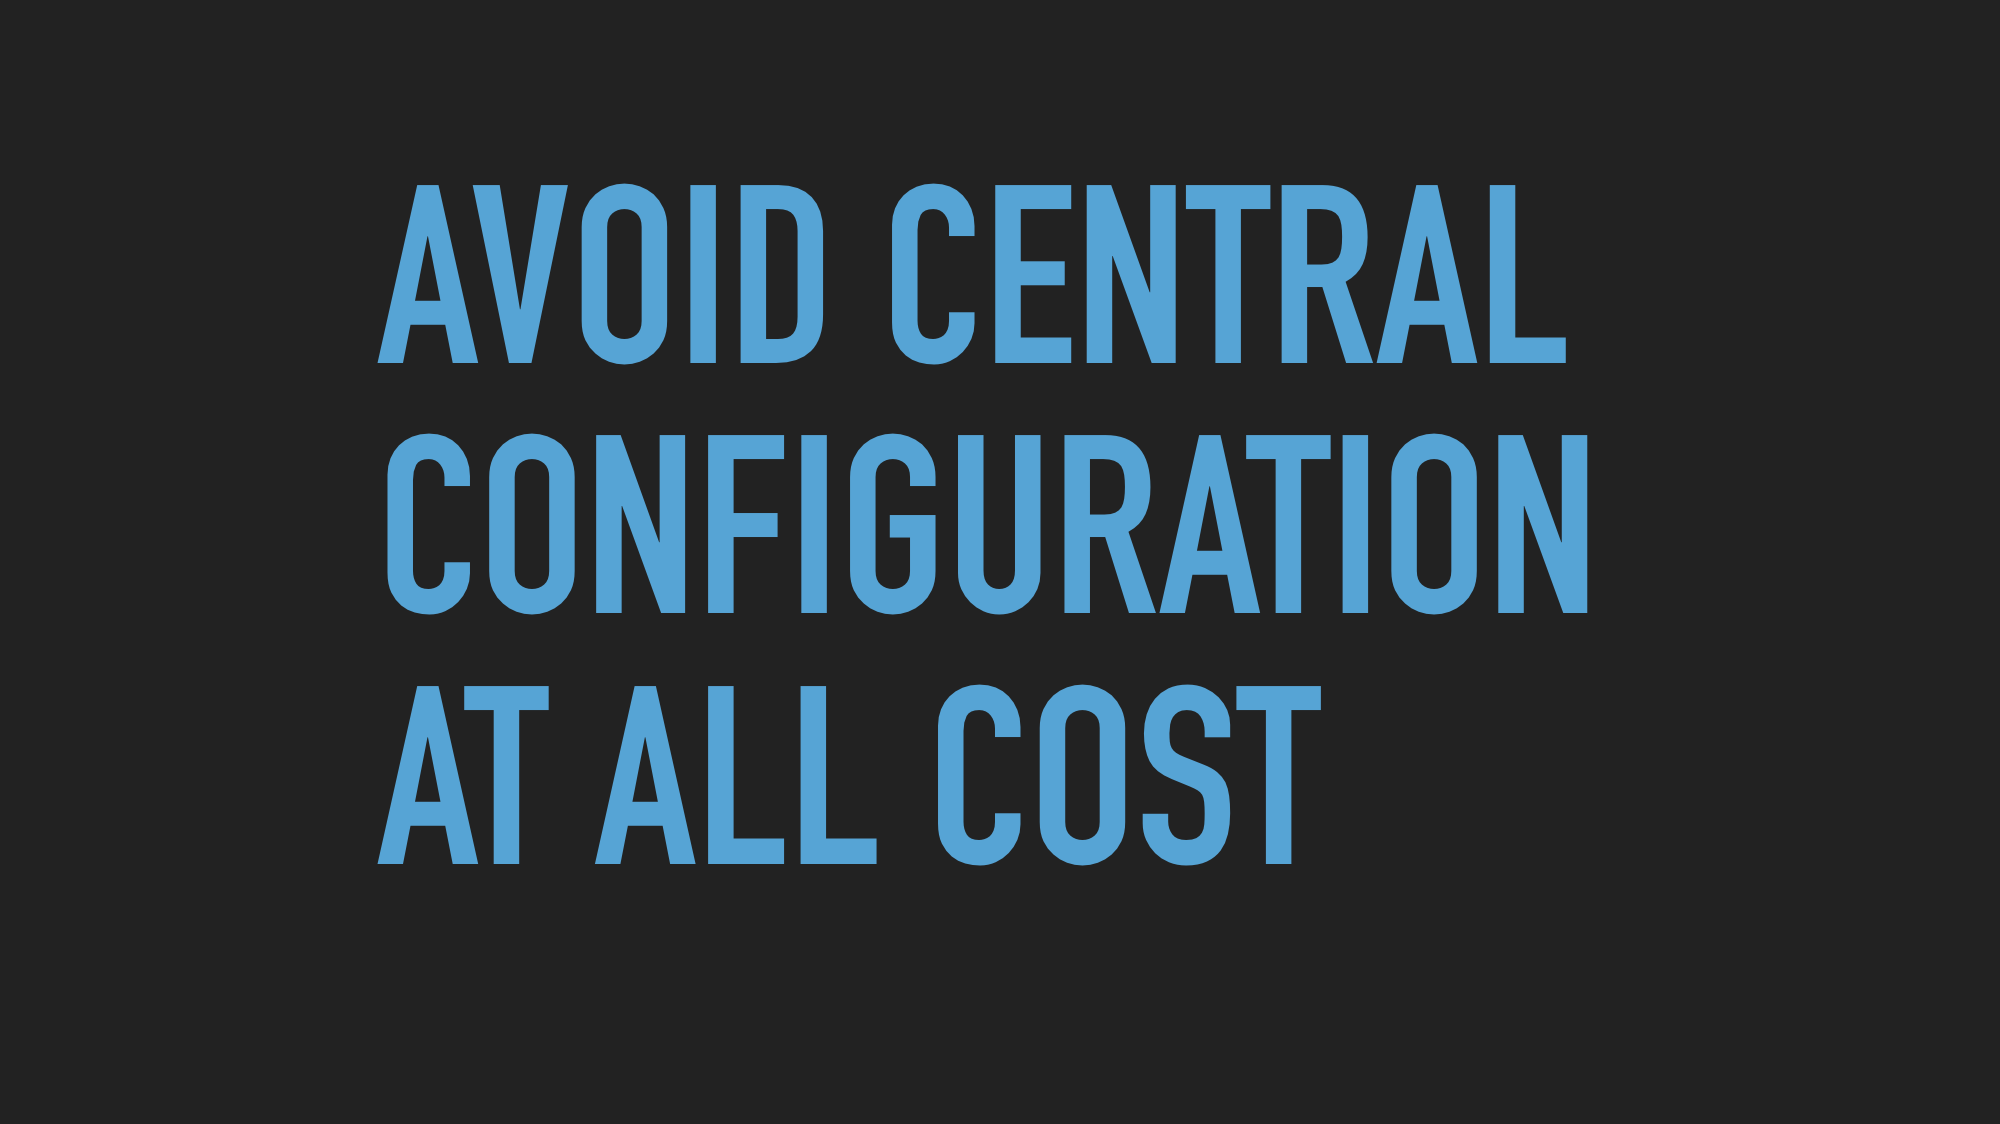 Slide text: Avoid central configuration at all cost